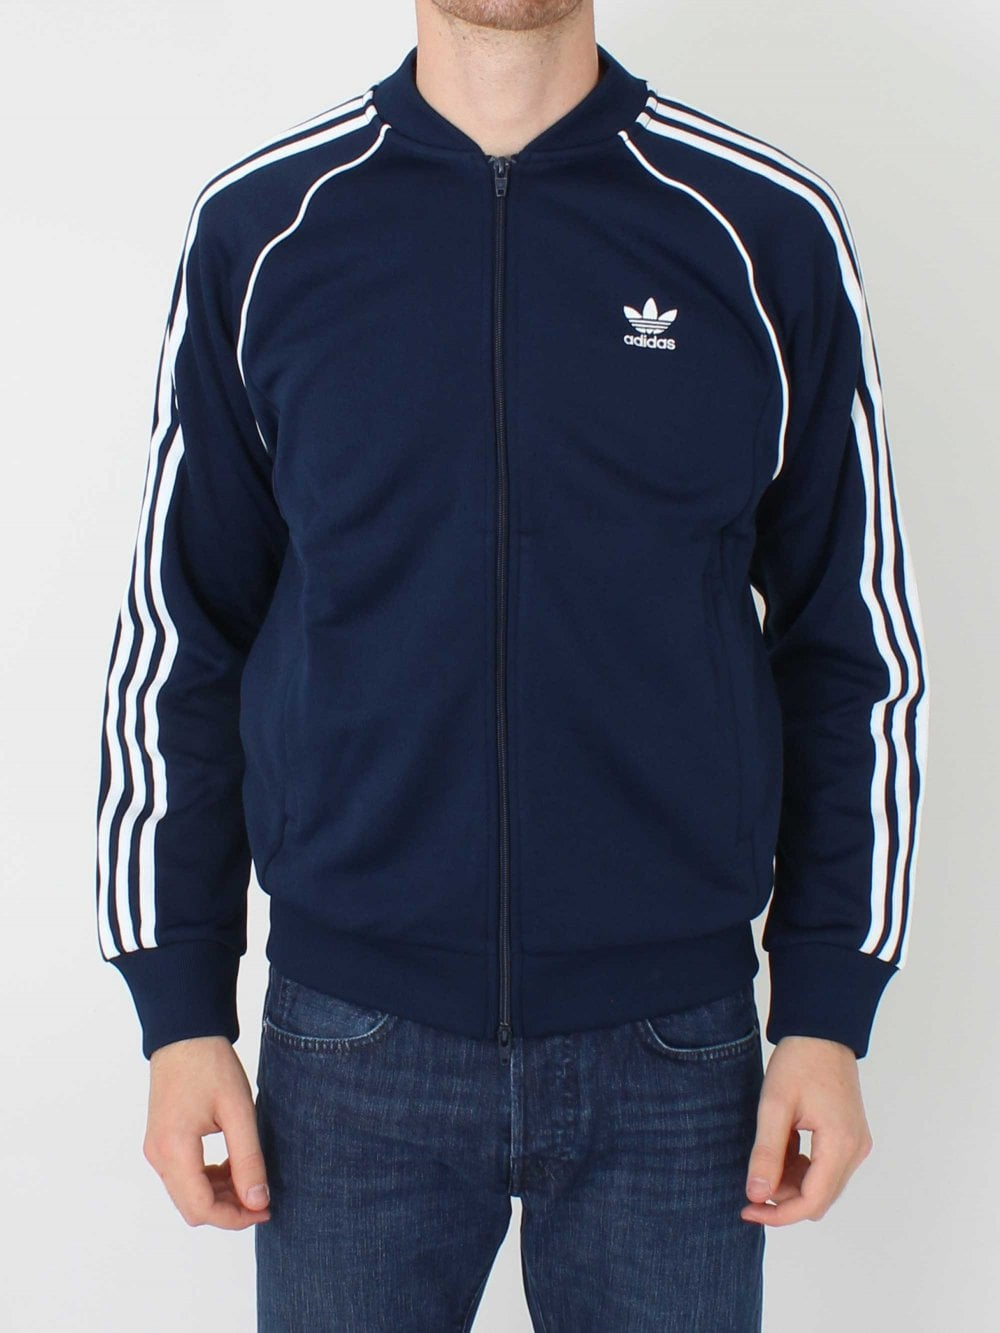 Adidas SST Track Top in Navy  33ed100b4d7a